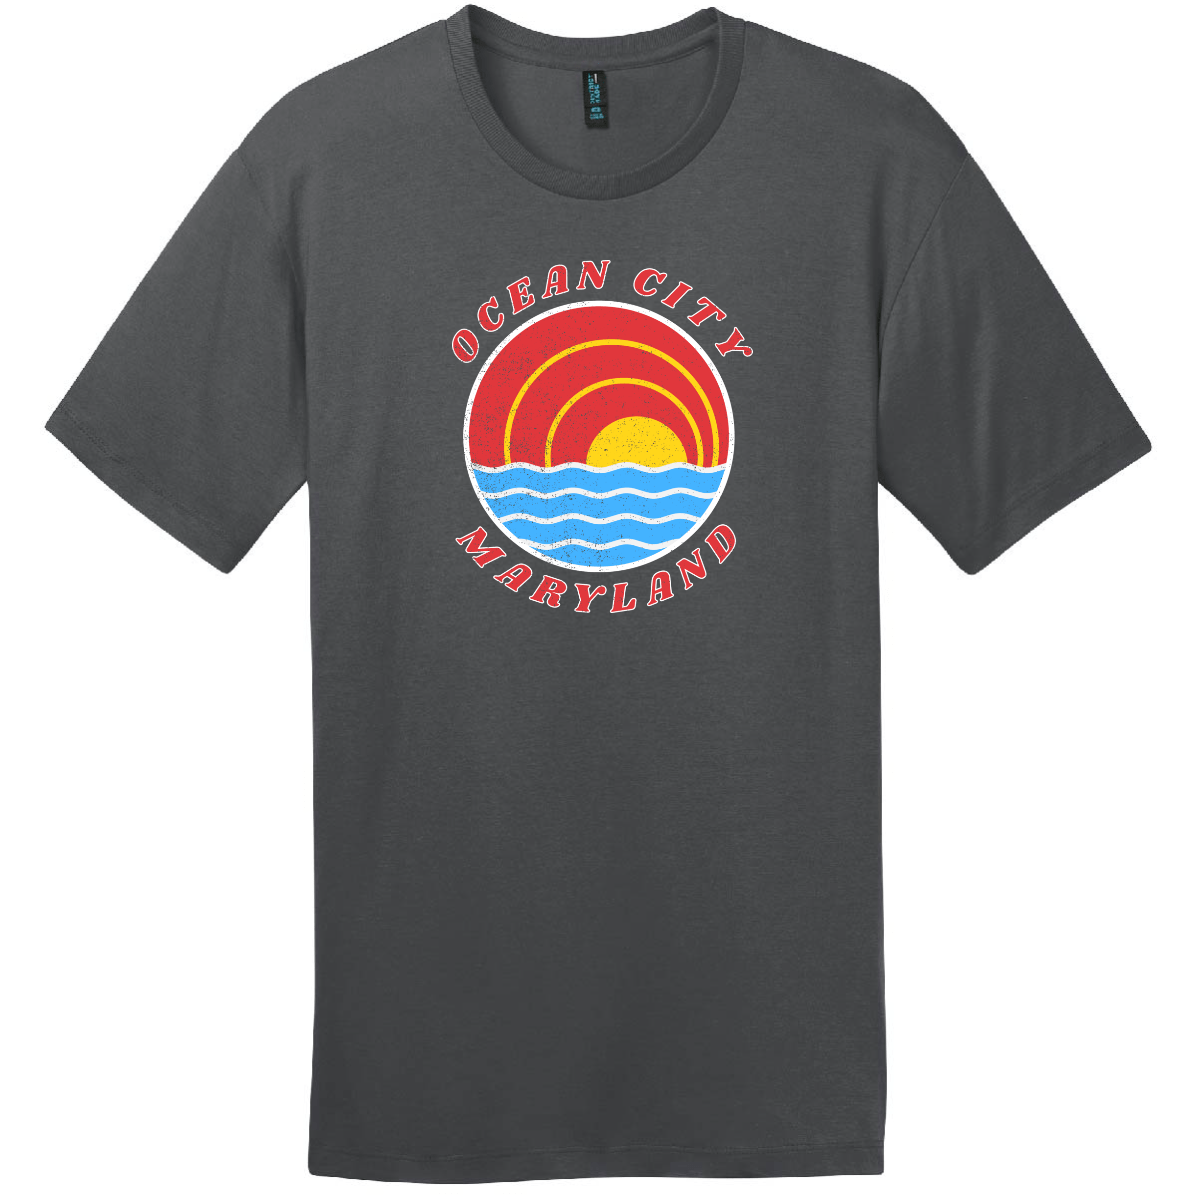 Ocean City Maryland Vintage T-Shirt